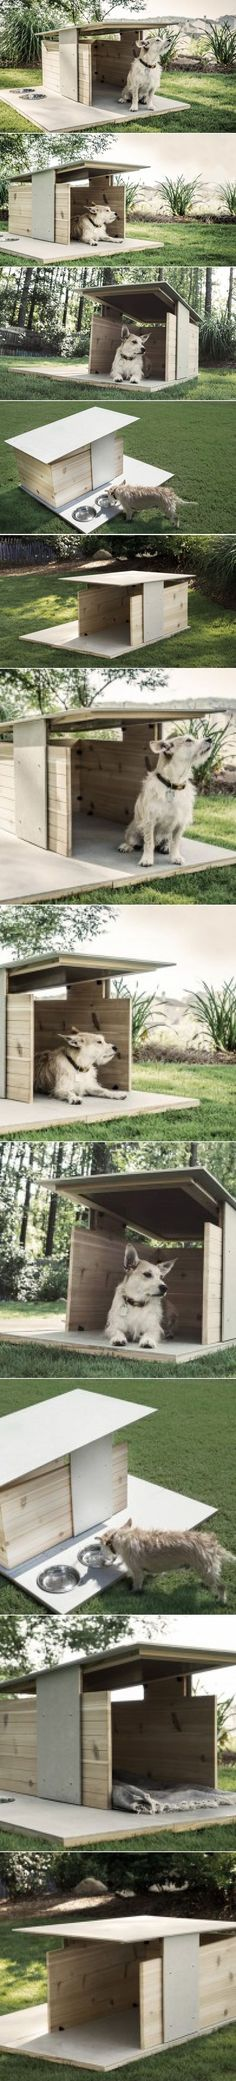 Two Atlanta-Based Designers Create An Architecturally Inspired Dog House…